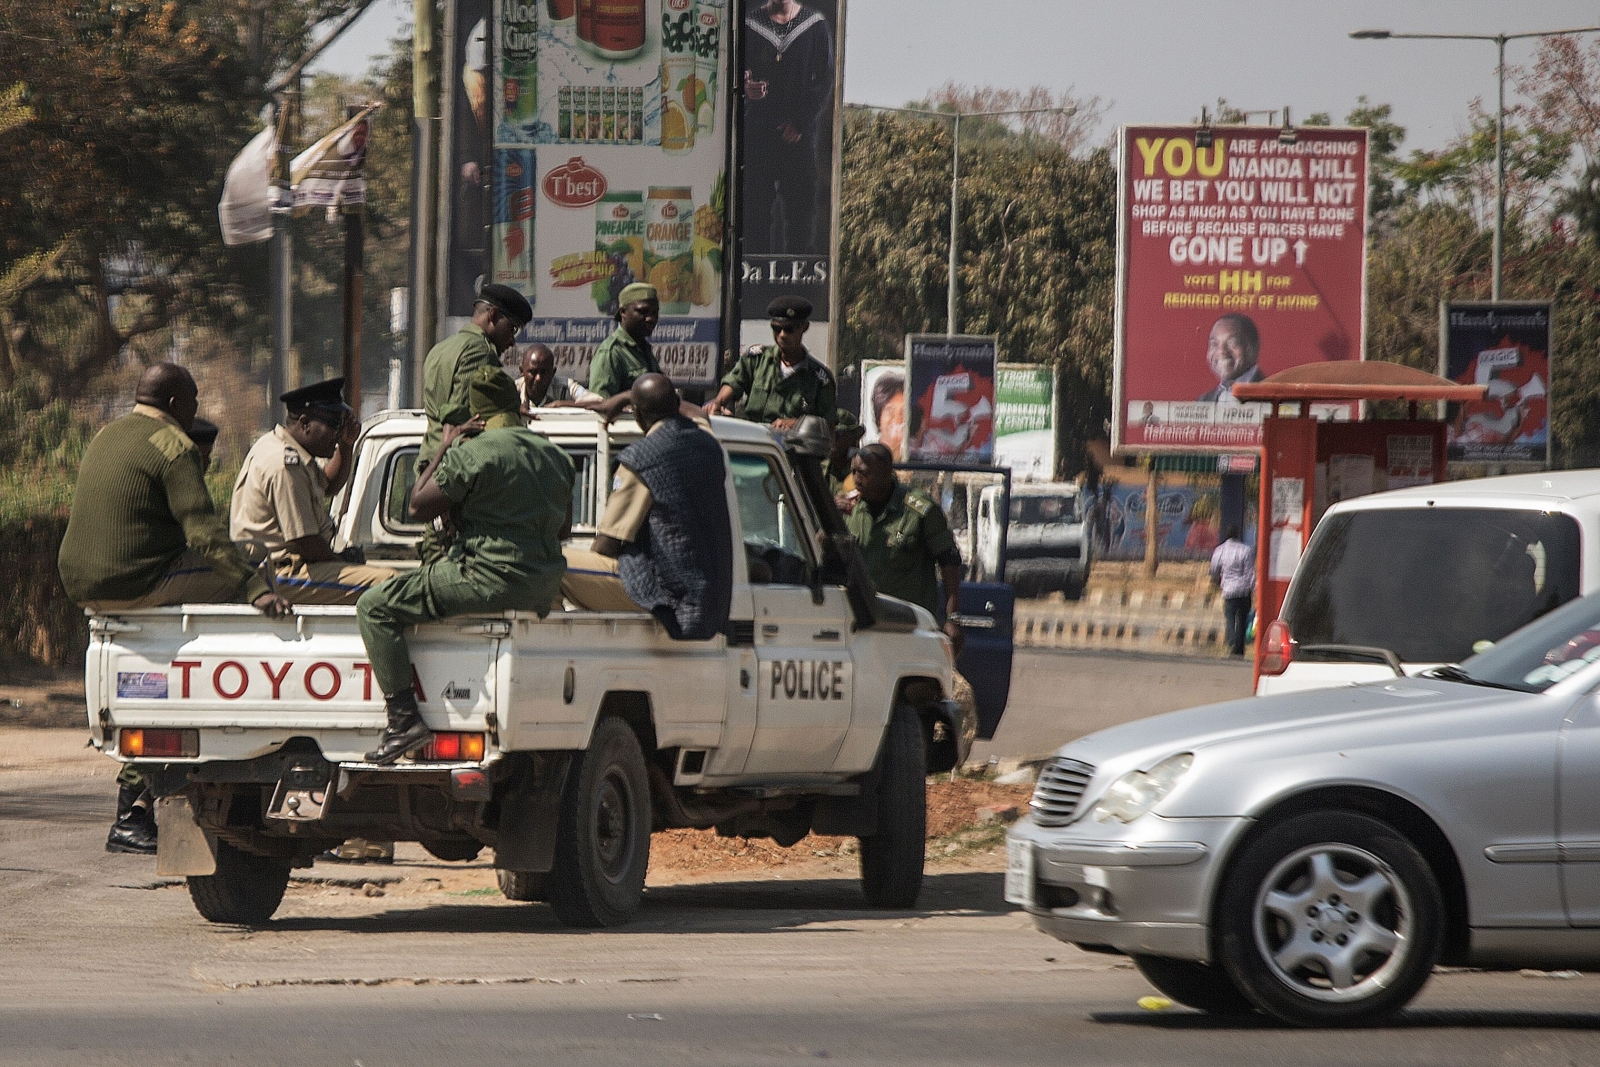 Police in Zambia elections